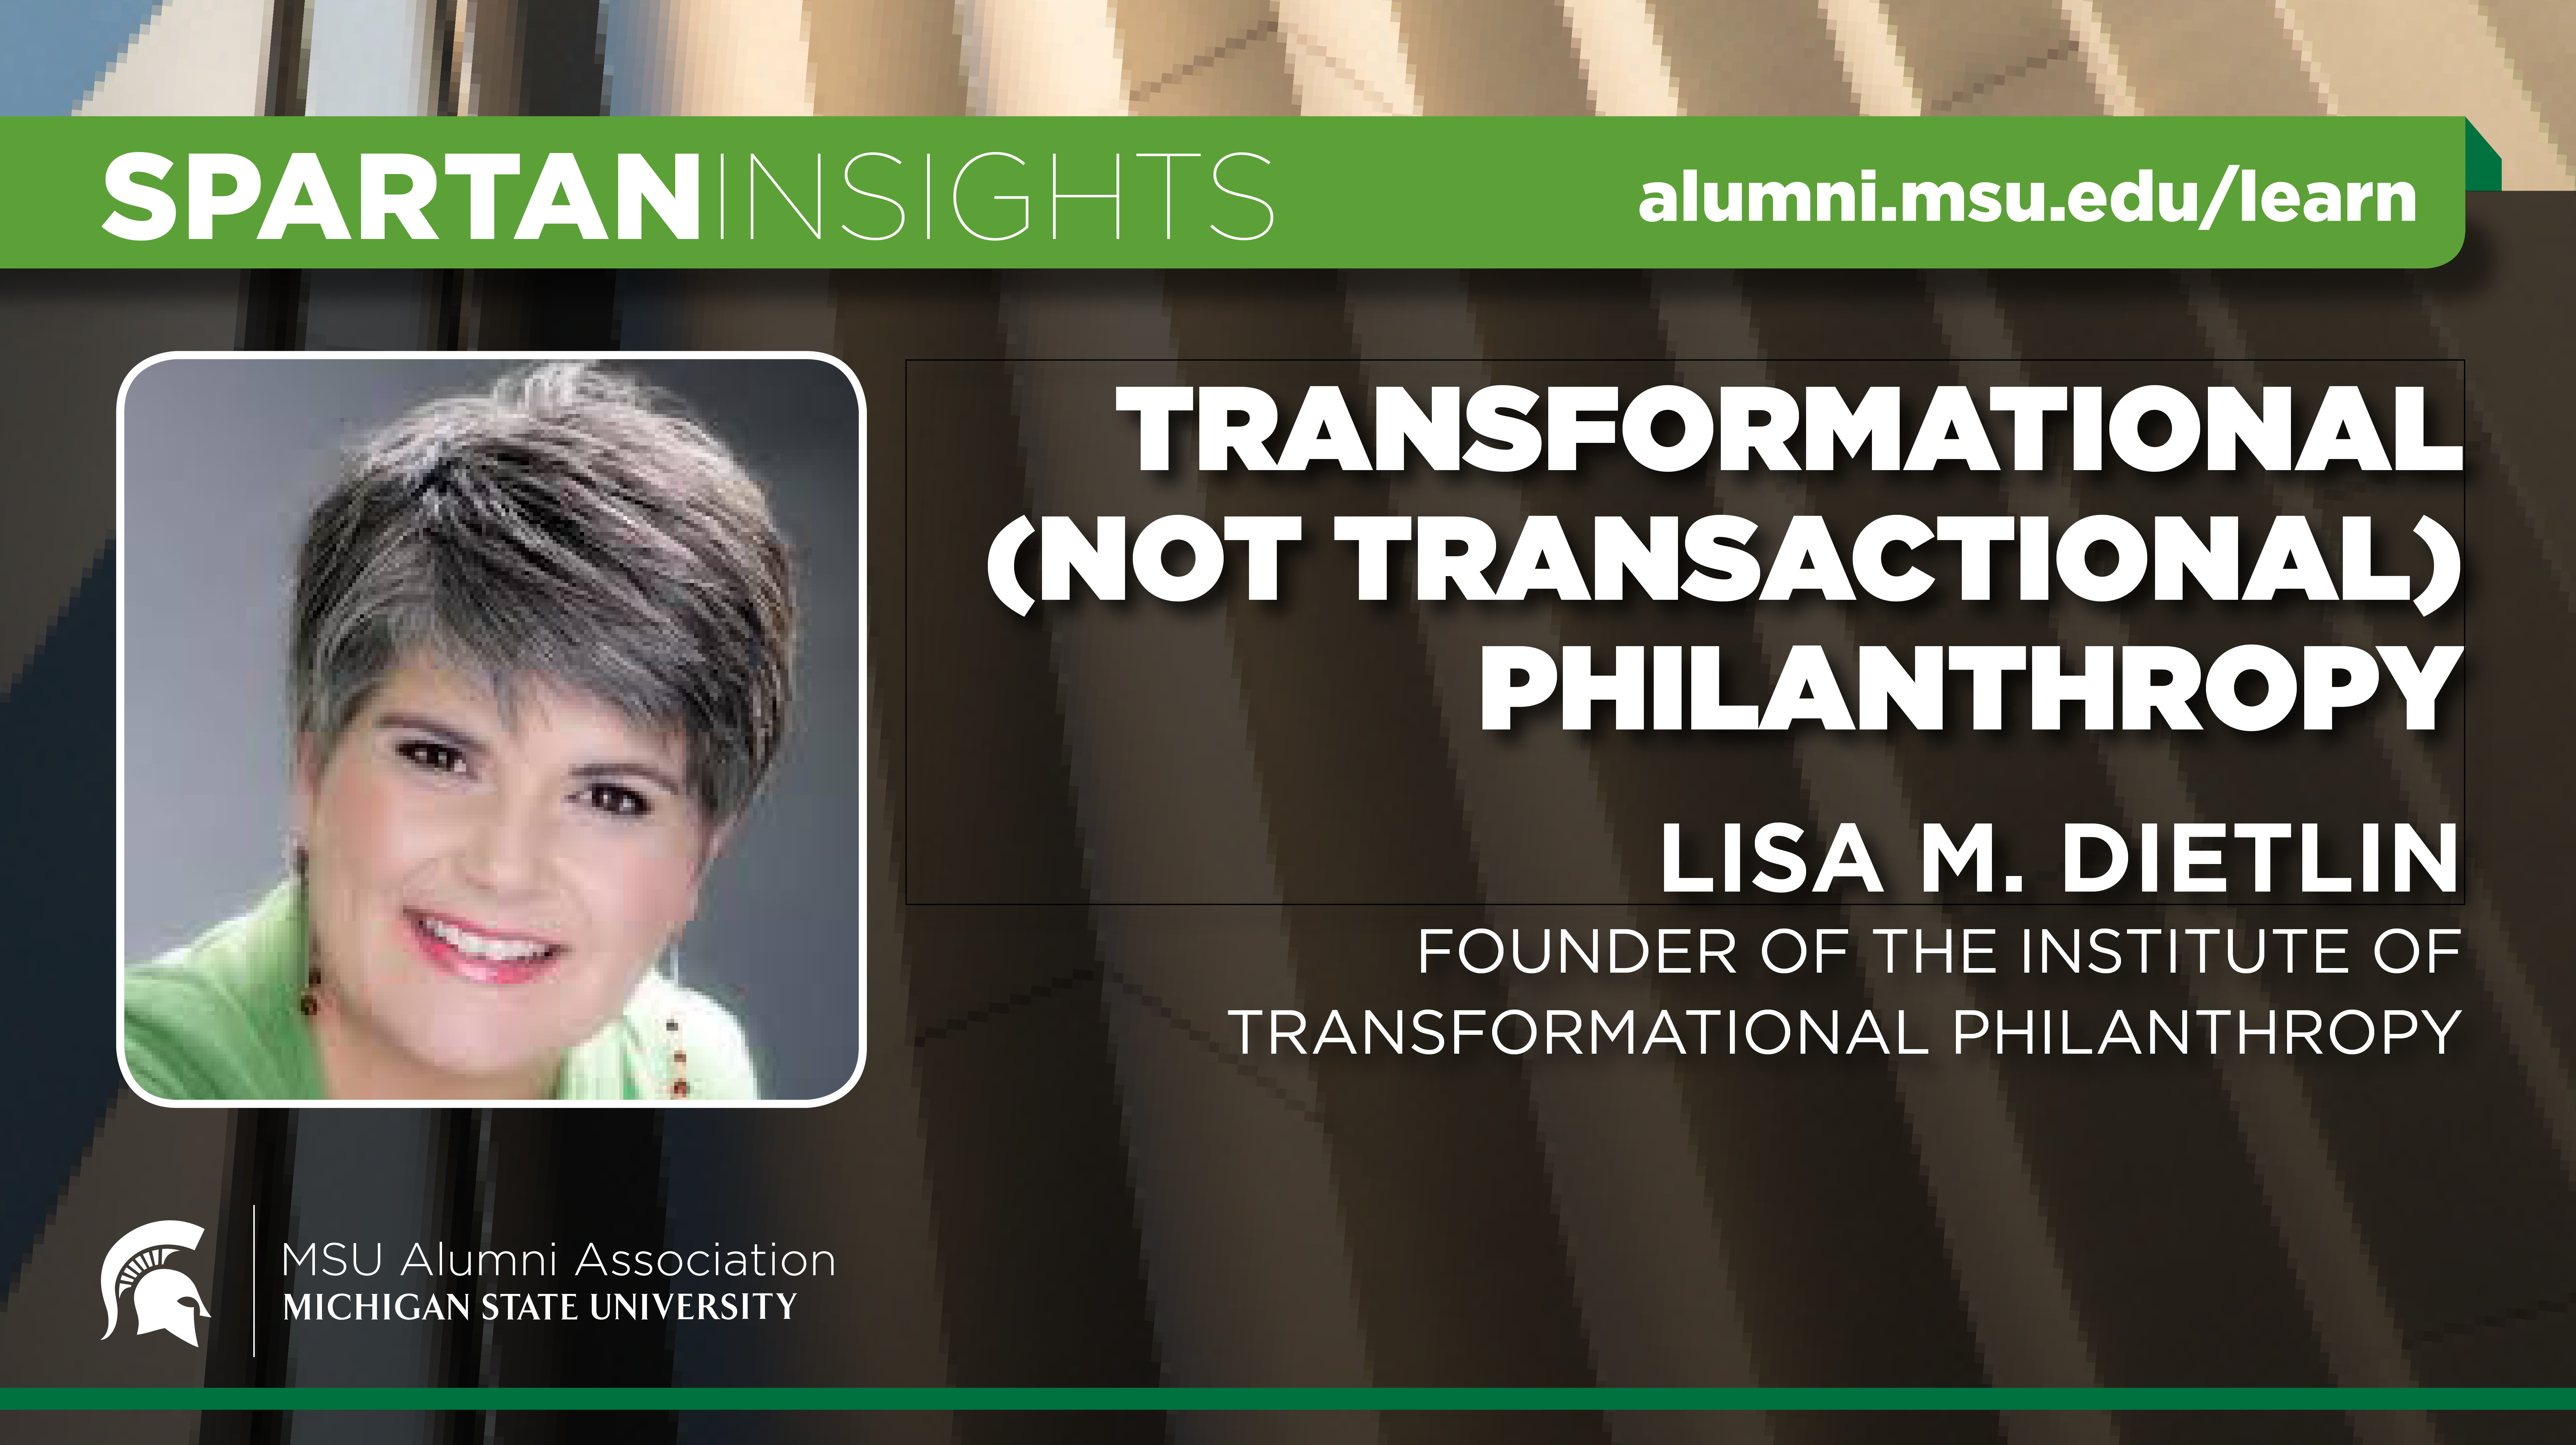 webinar cover image for Lisa M. Dietlin | Transformational (Not Transactional) Philanthropy